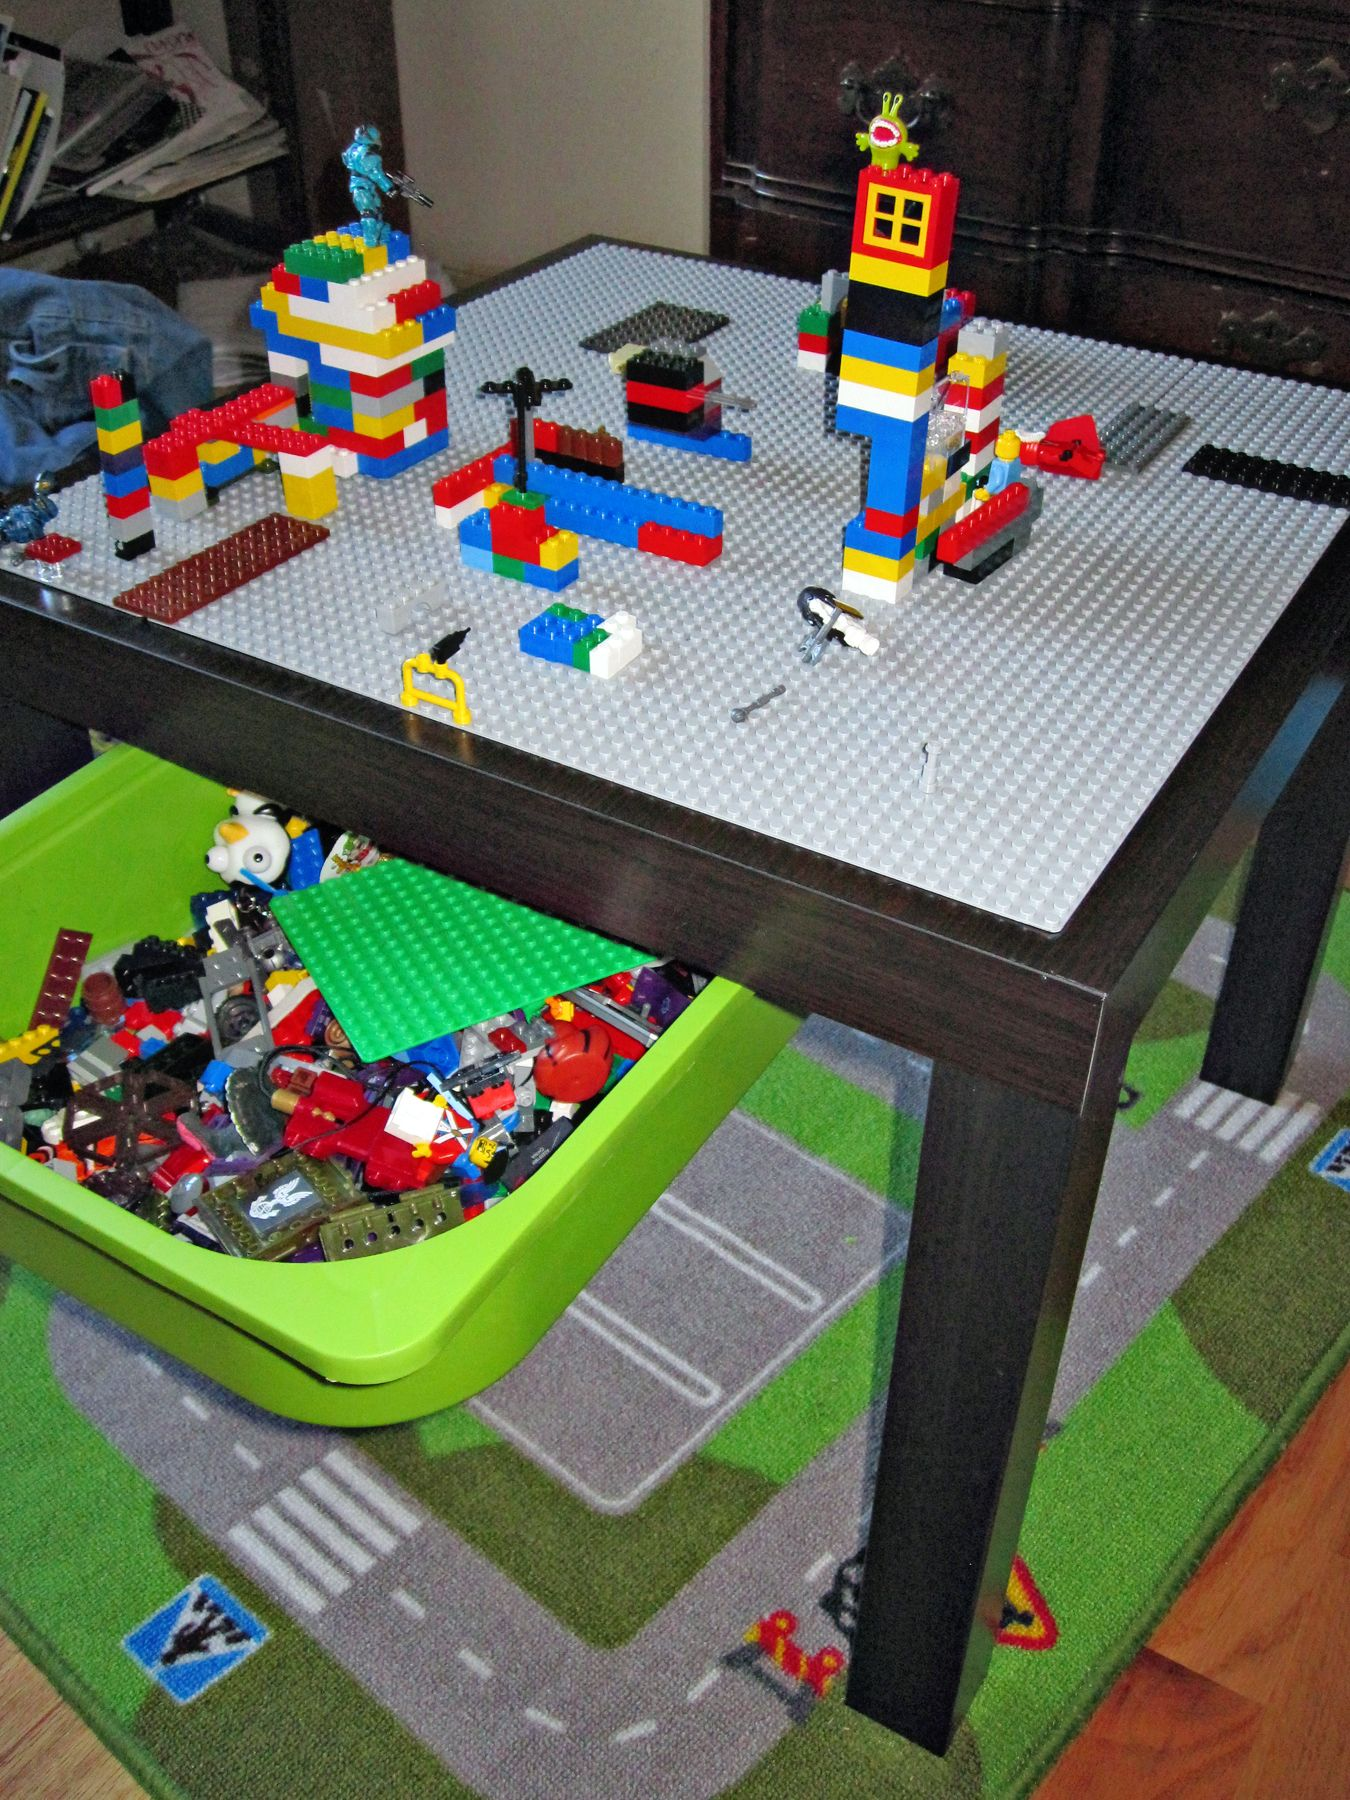 Ikea Lack Lego Table The Photos Gallery Of Home Interior